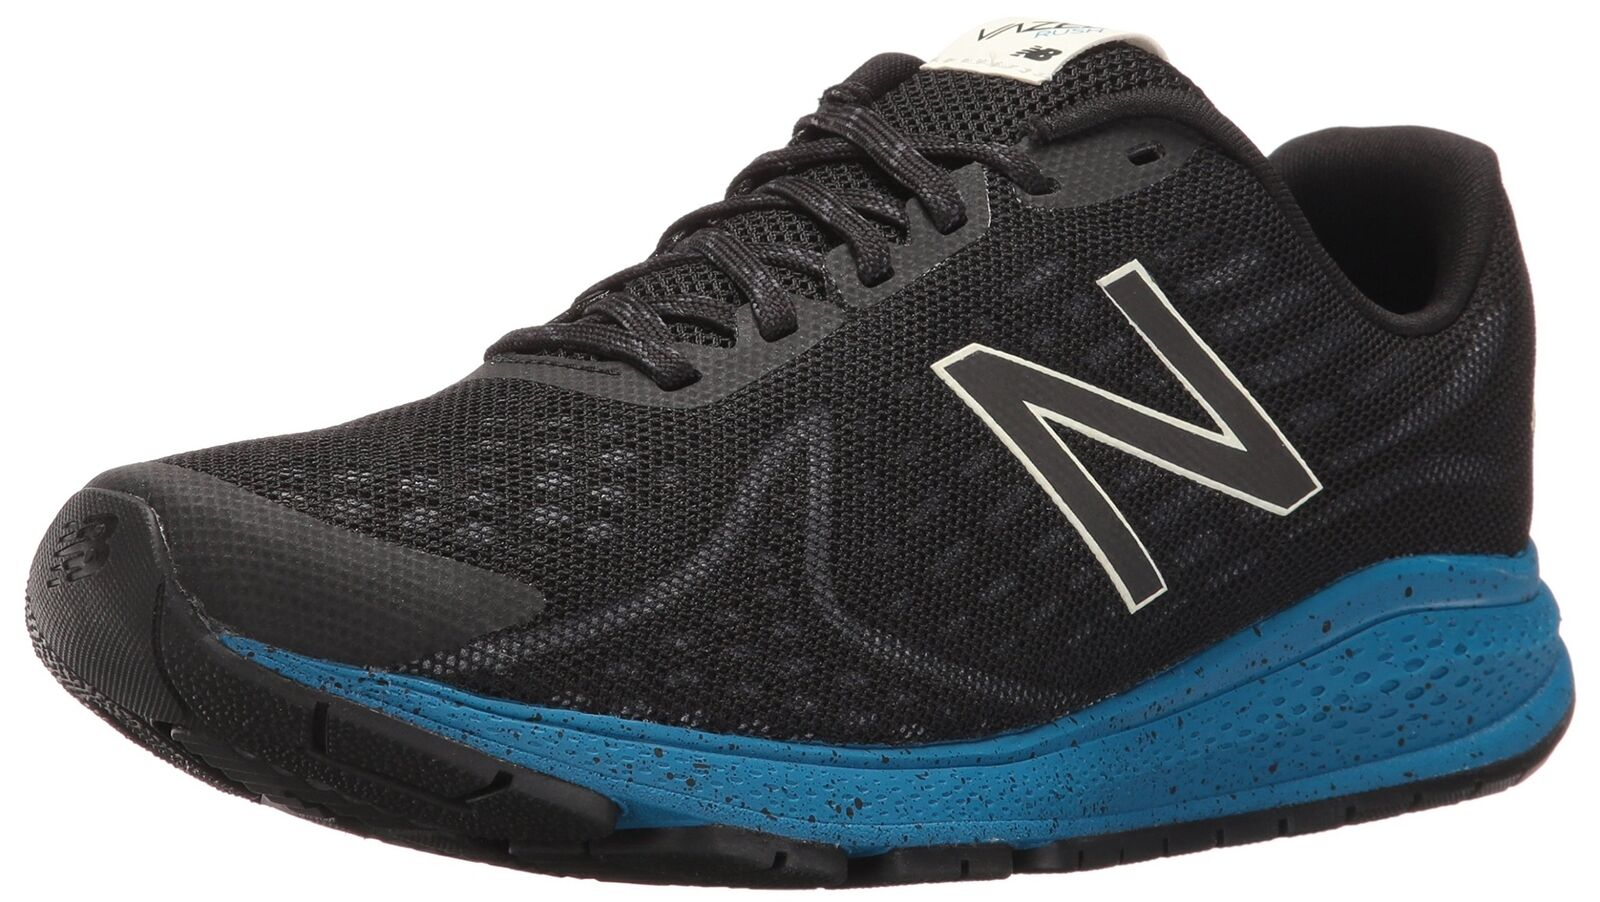 New Balance Men's Vazee Rush v2 Running shoes, bluee Silver, 8.5 D US